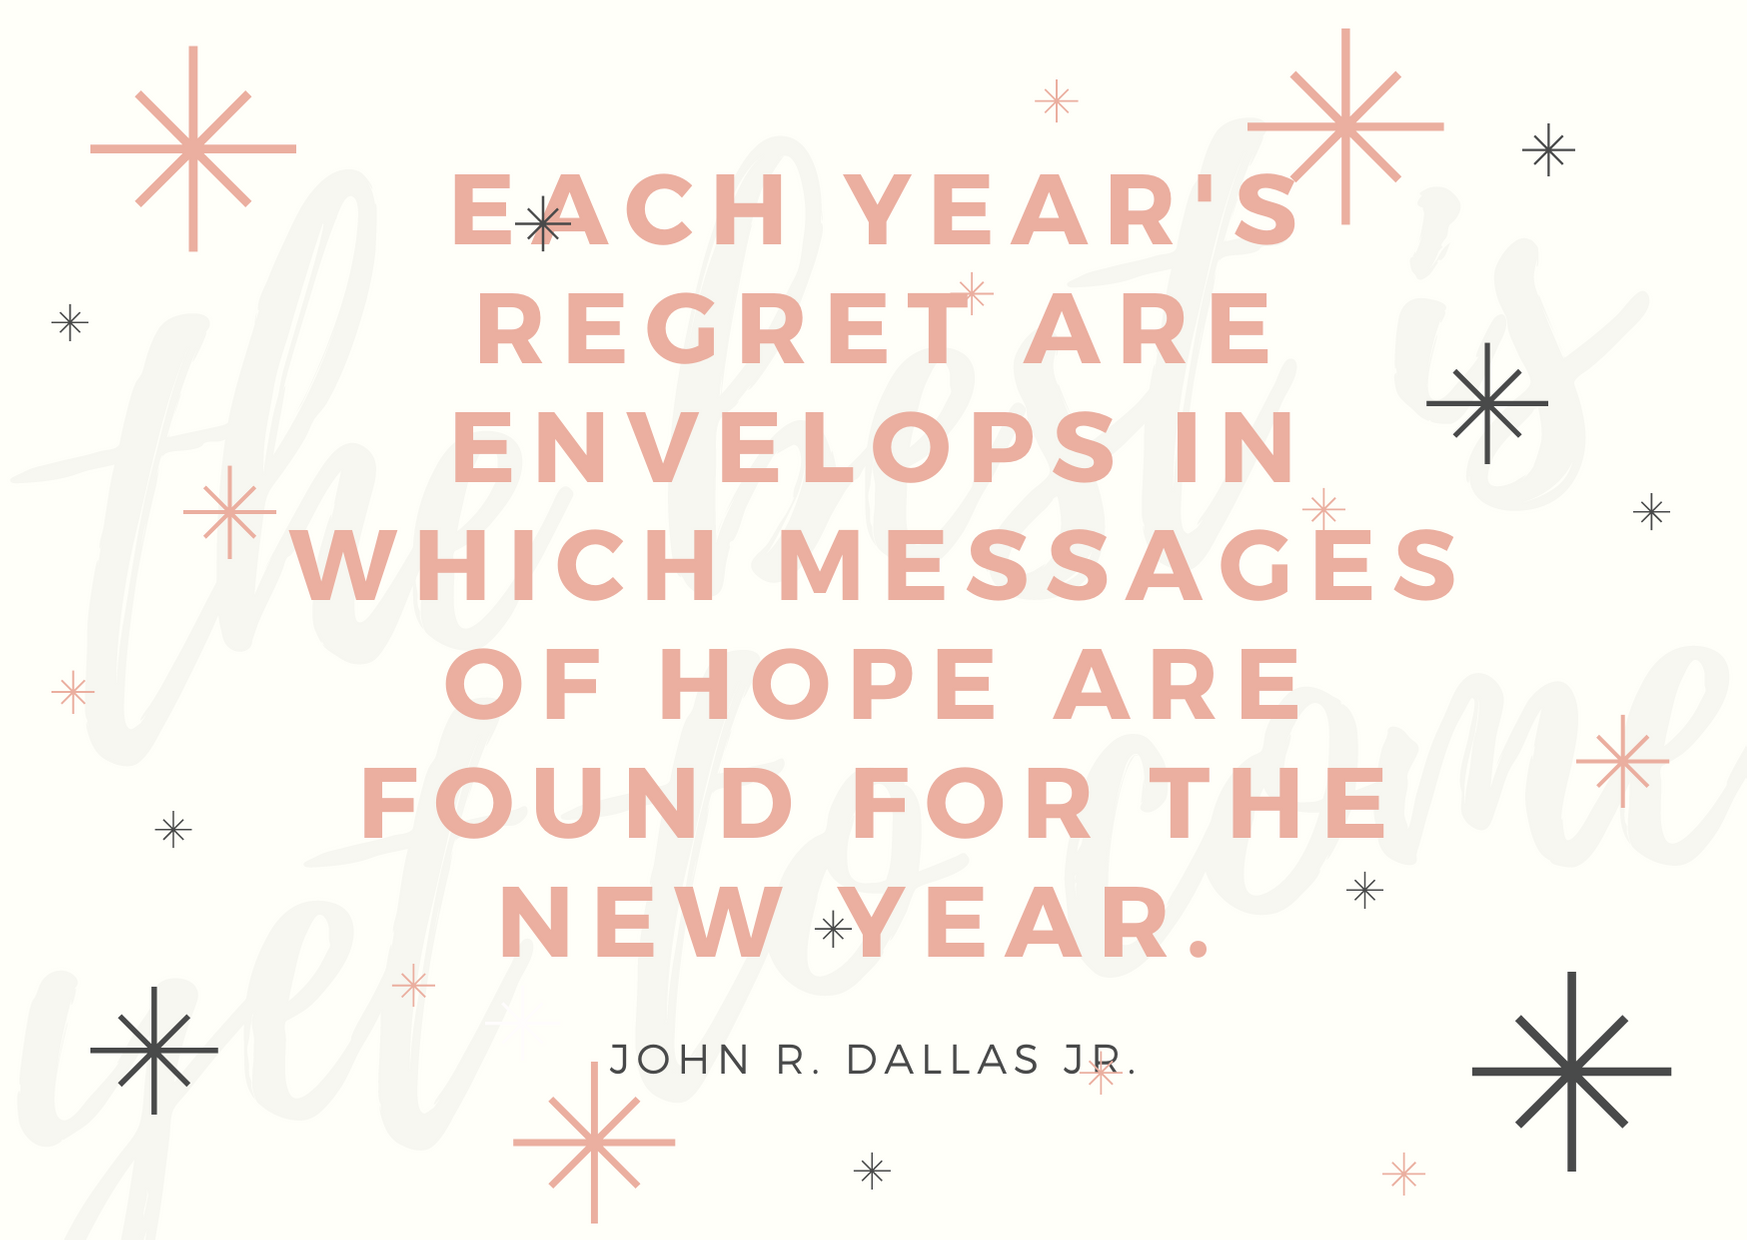 each year's regret are envelops in which messages of hope are found for the new year.